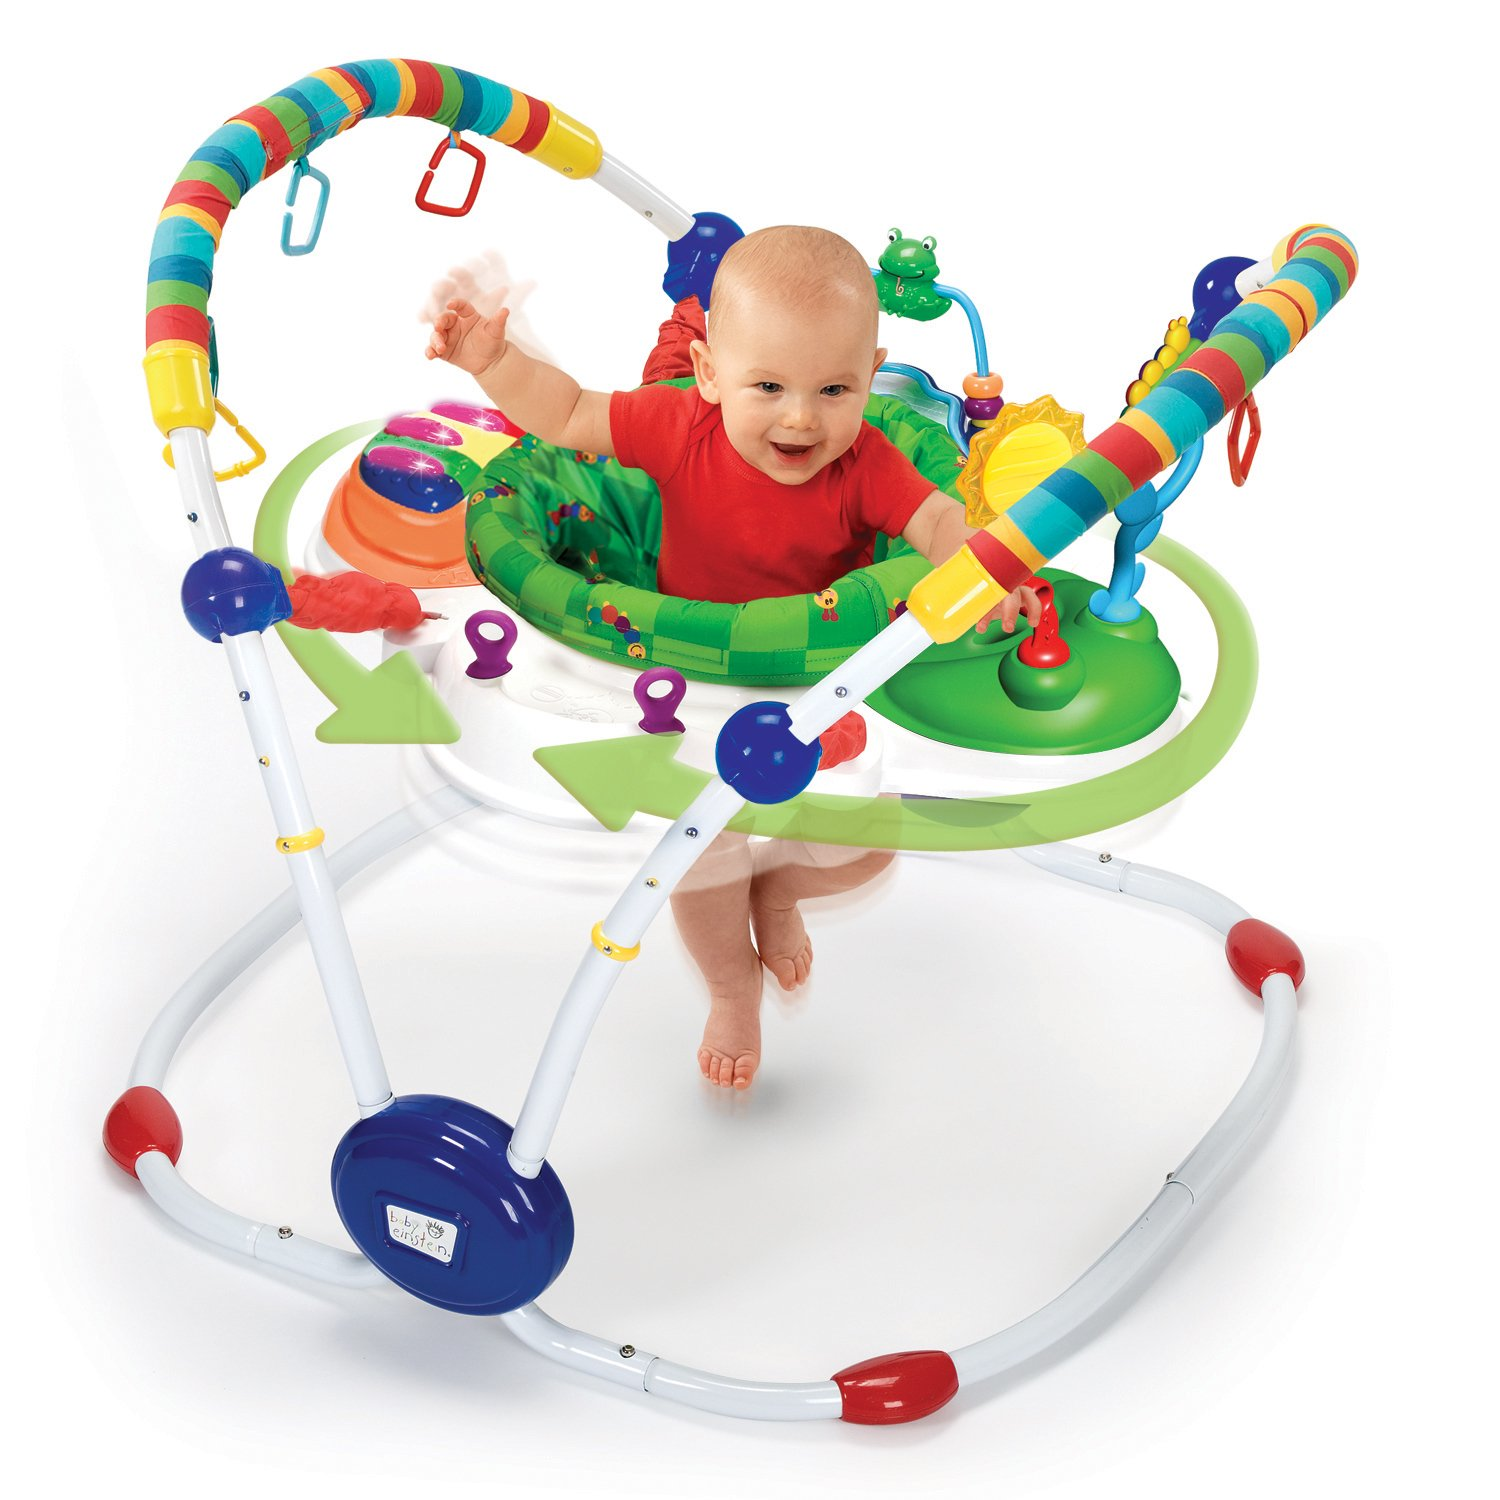 d06dd377c Amazon.com   Baby Einstein Musical Motion Activity Jumper